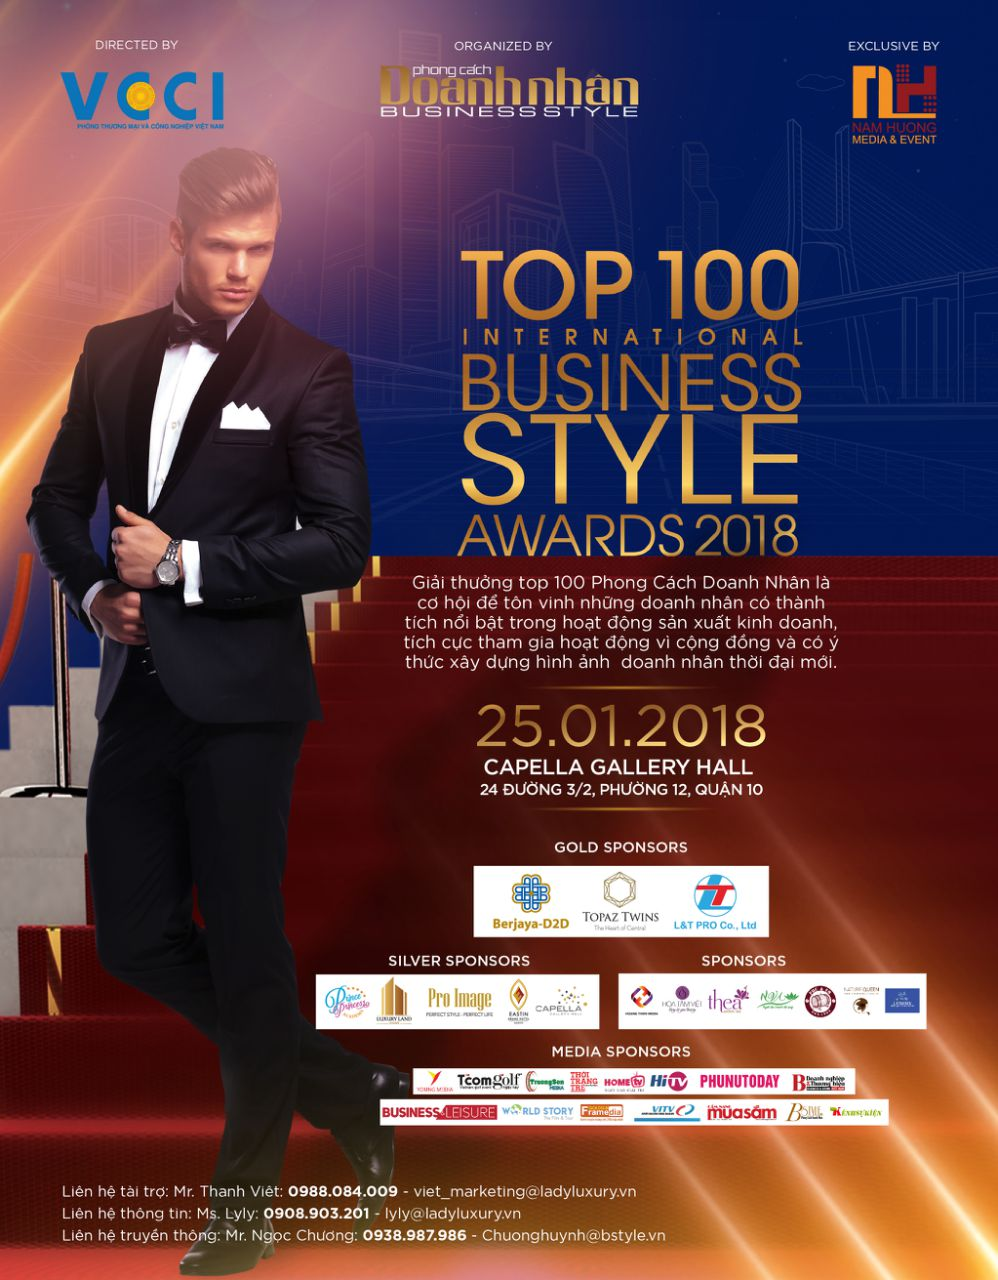 Revealing nominees of Top 100 Business Style Awards 2018